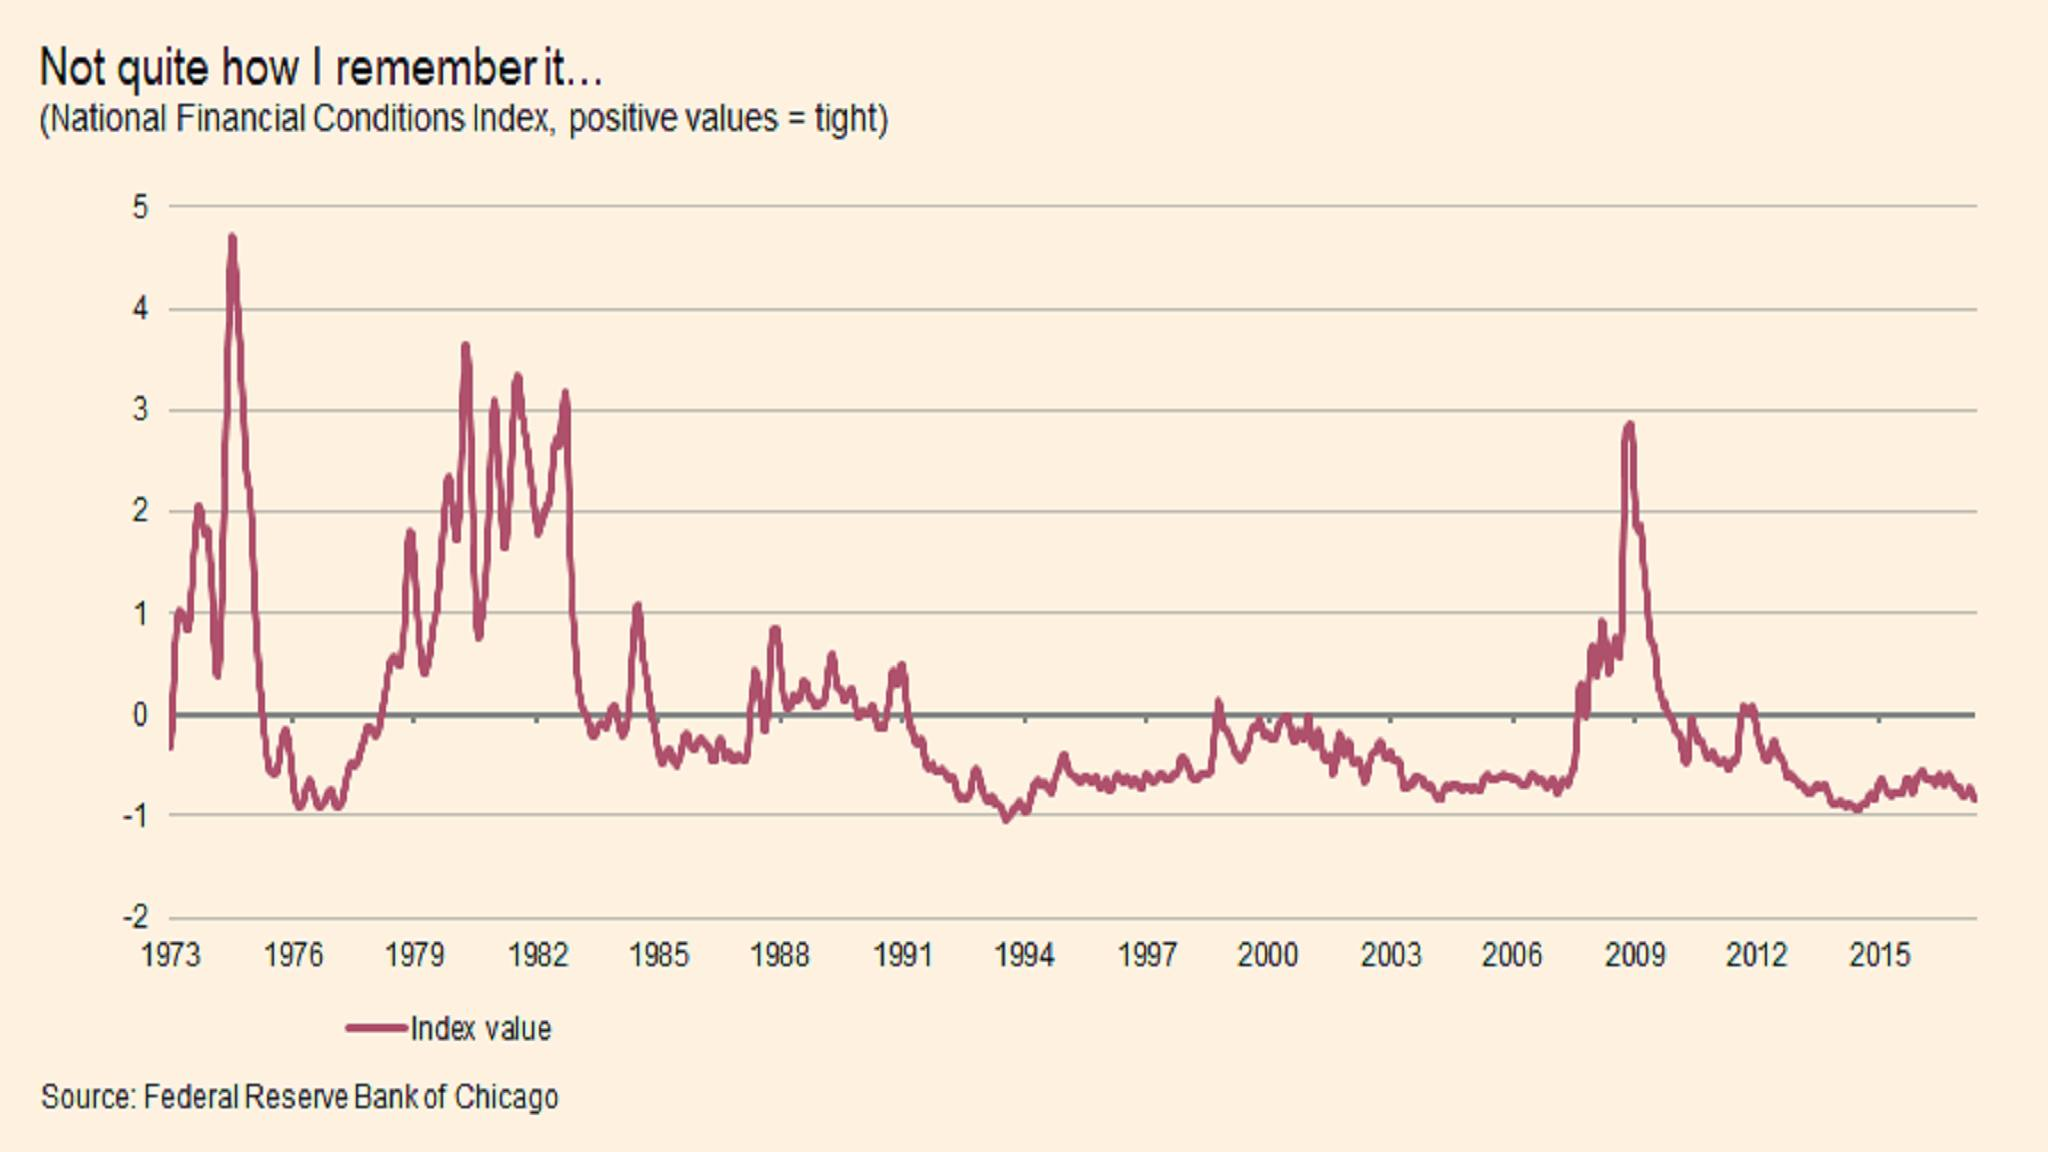 Measuring financial conditions in poorer countries | FT ... - photo#21